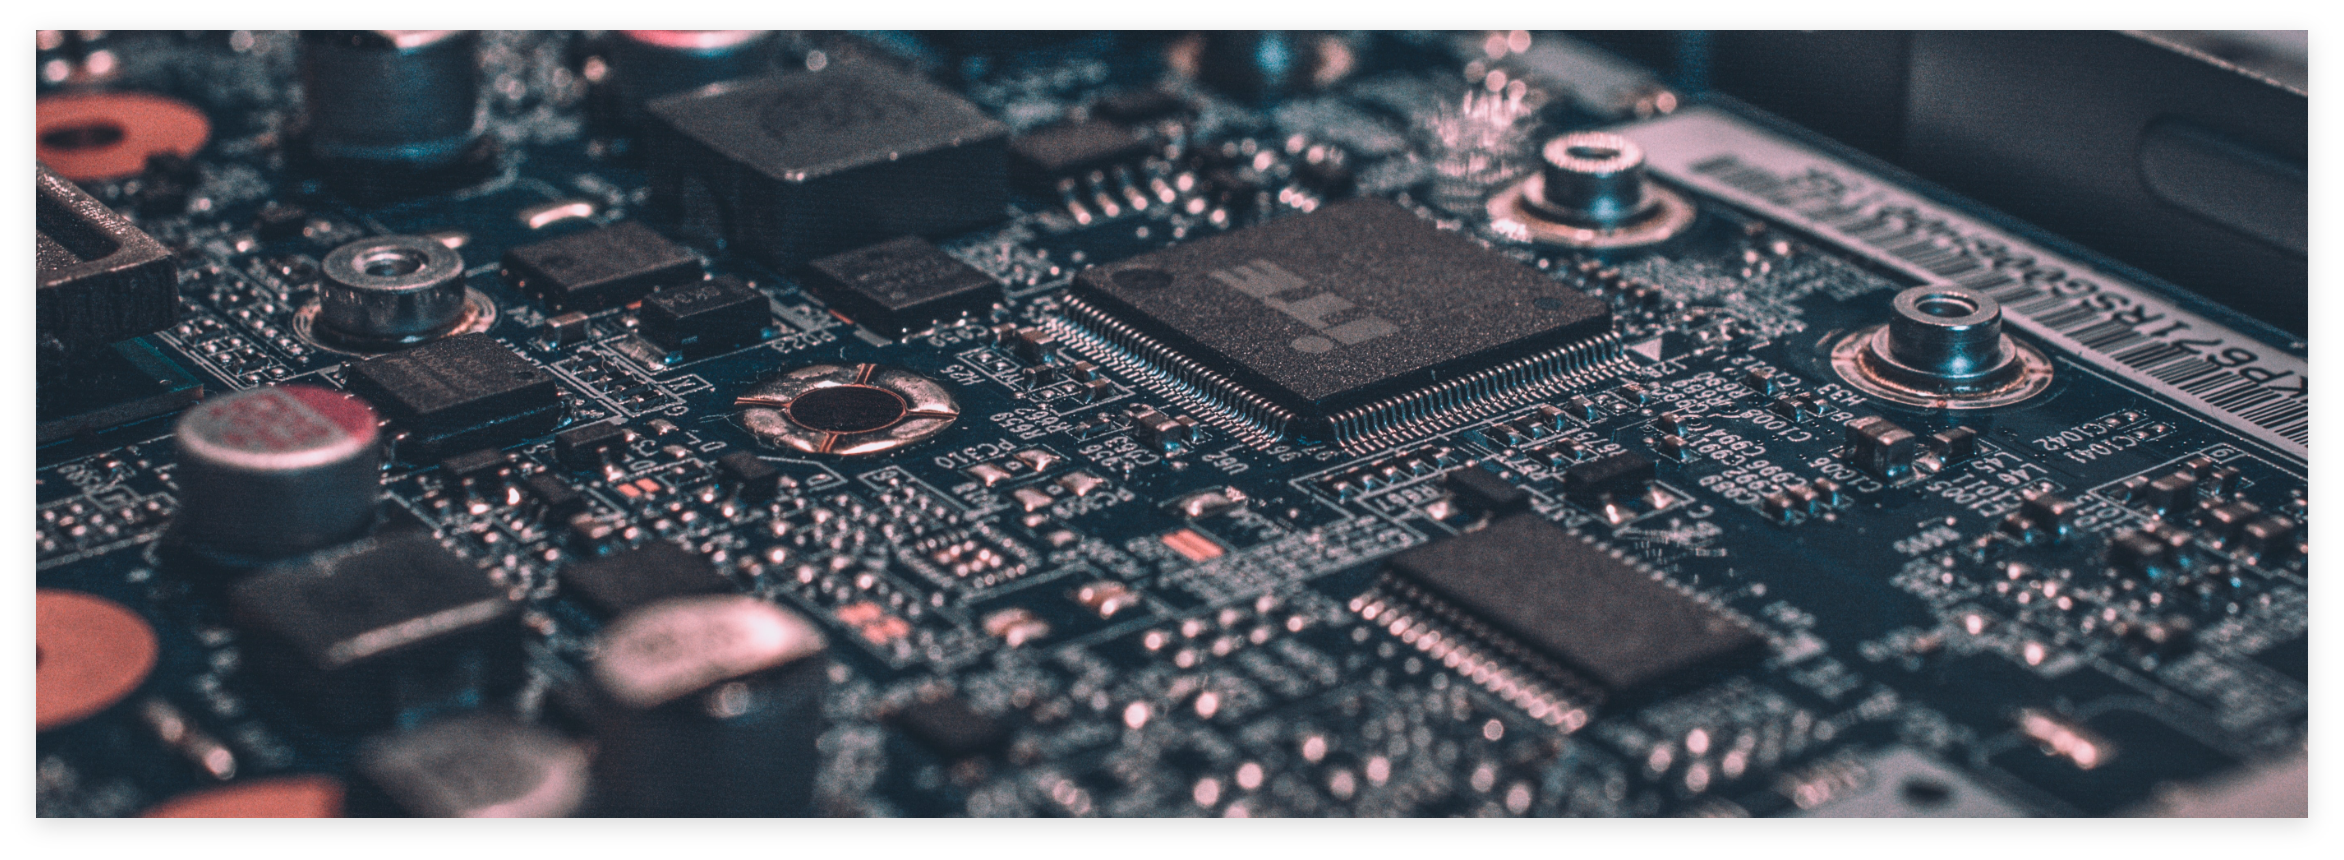 Close up of circuit board.